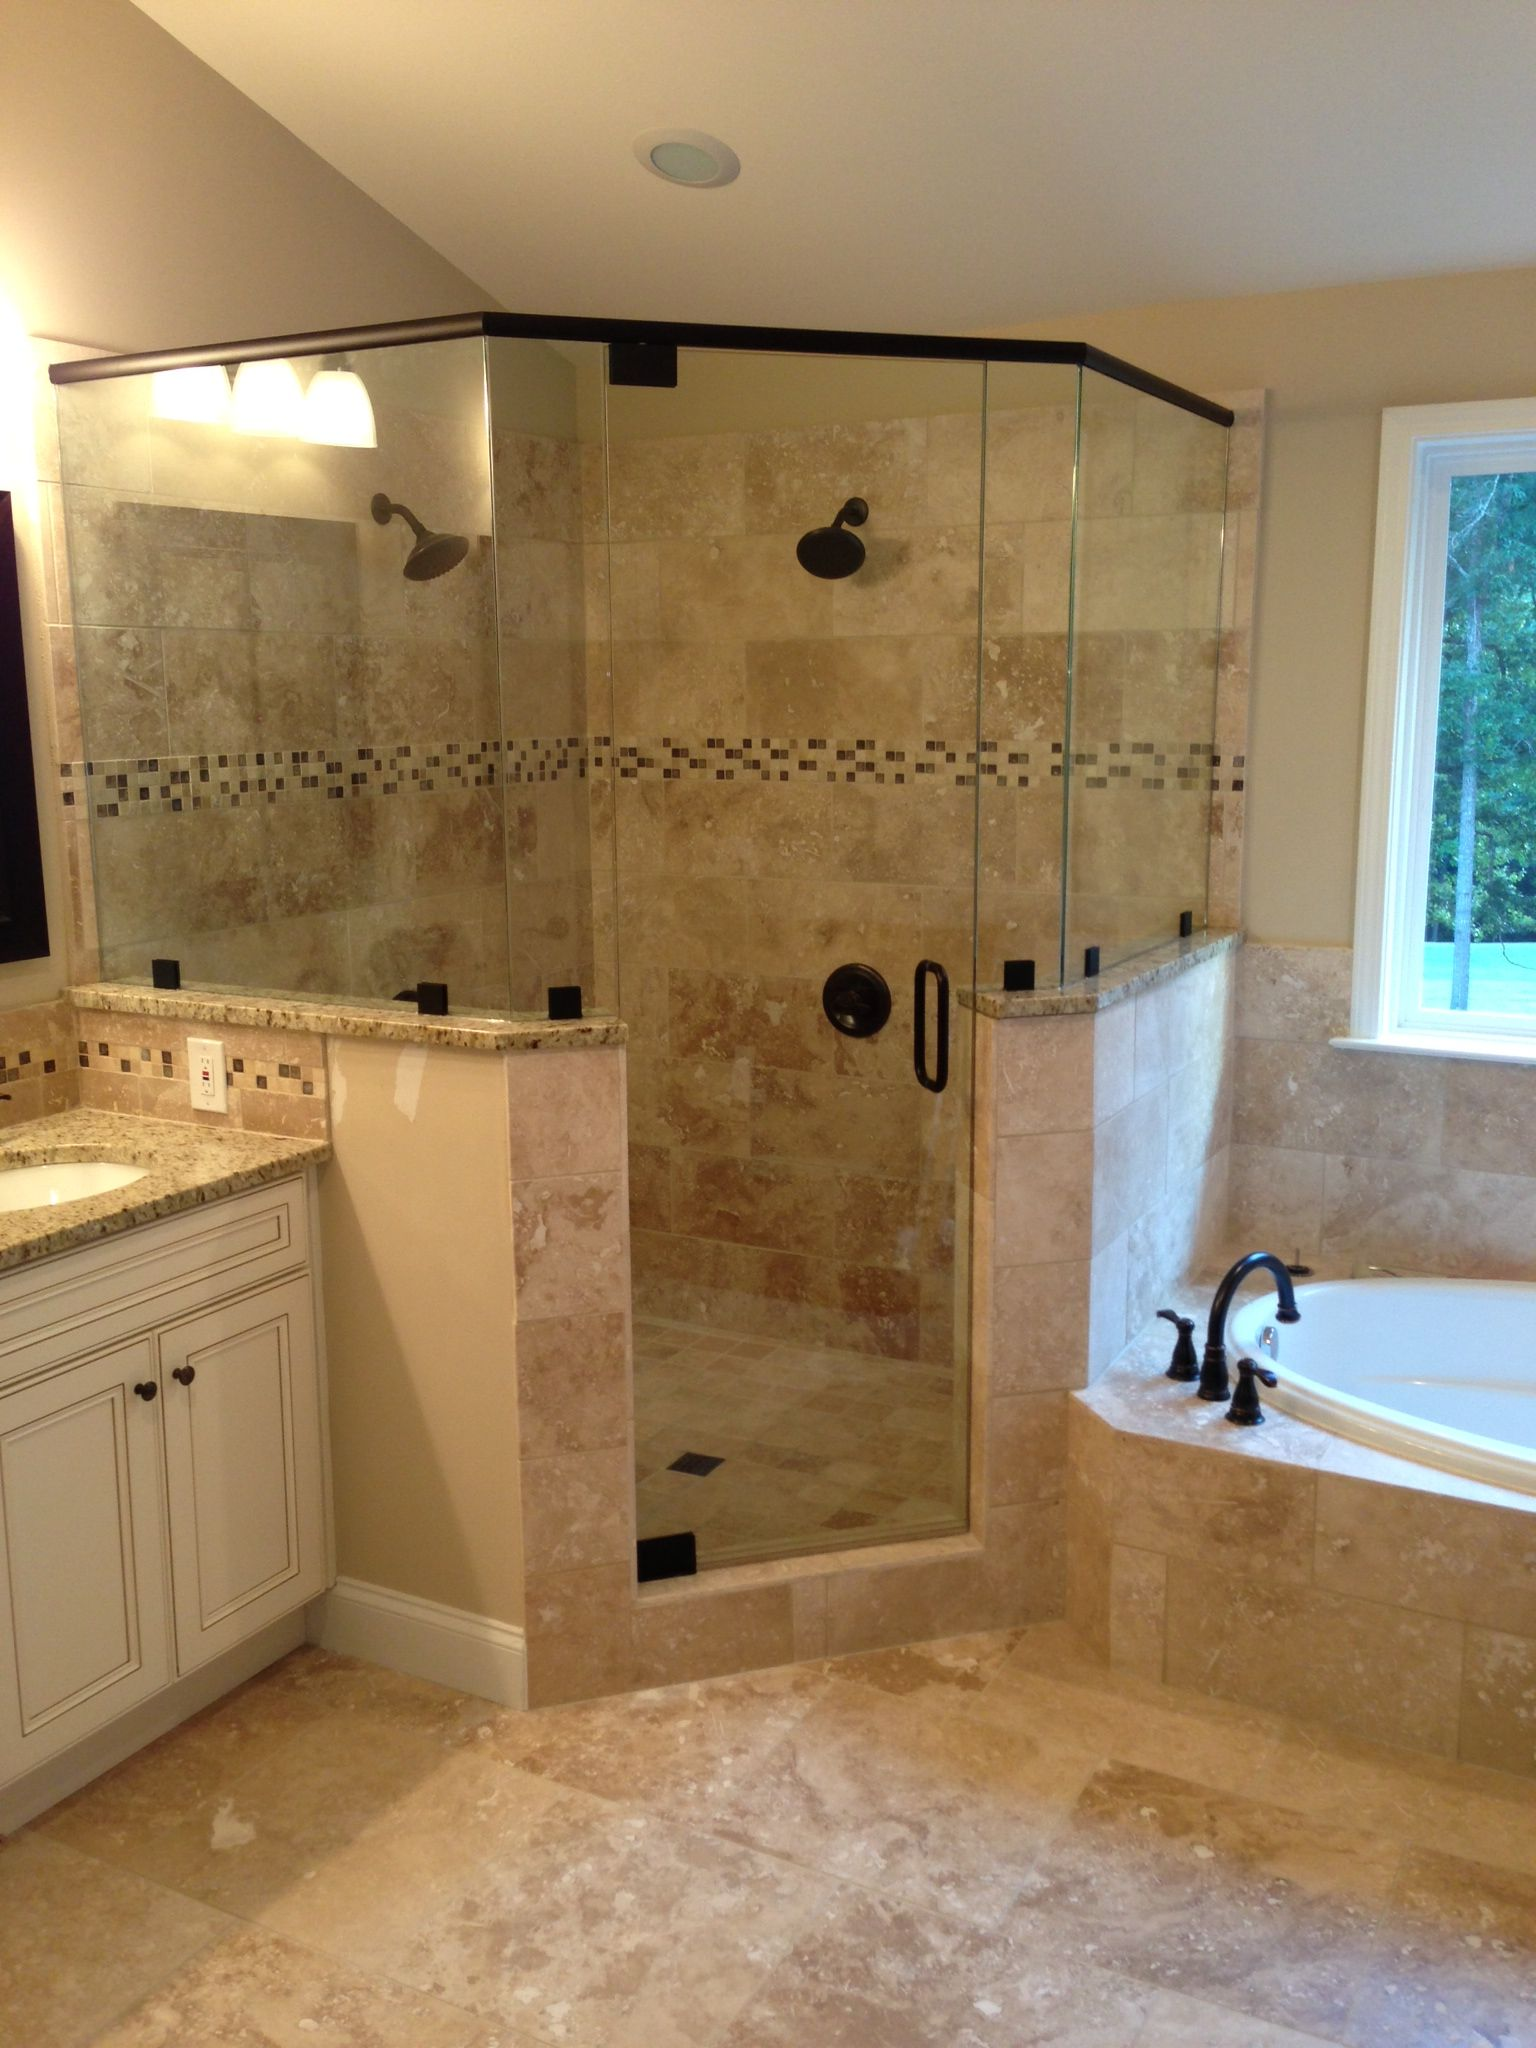 Frameless Corner Glass Shower. Dual Shower Heads. Garden Tub. Tiled Shower